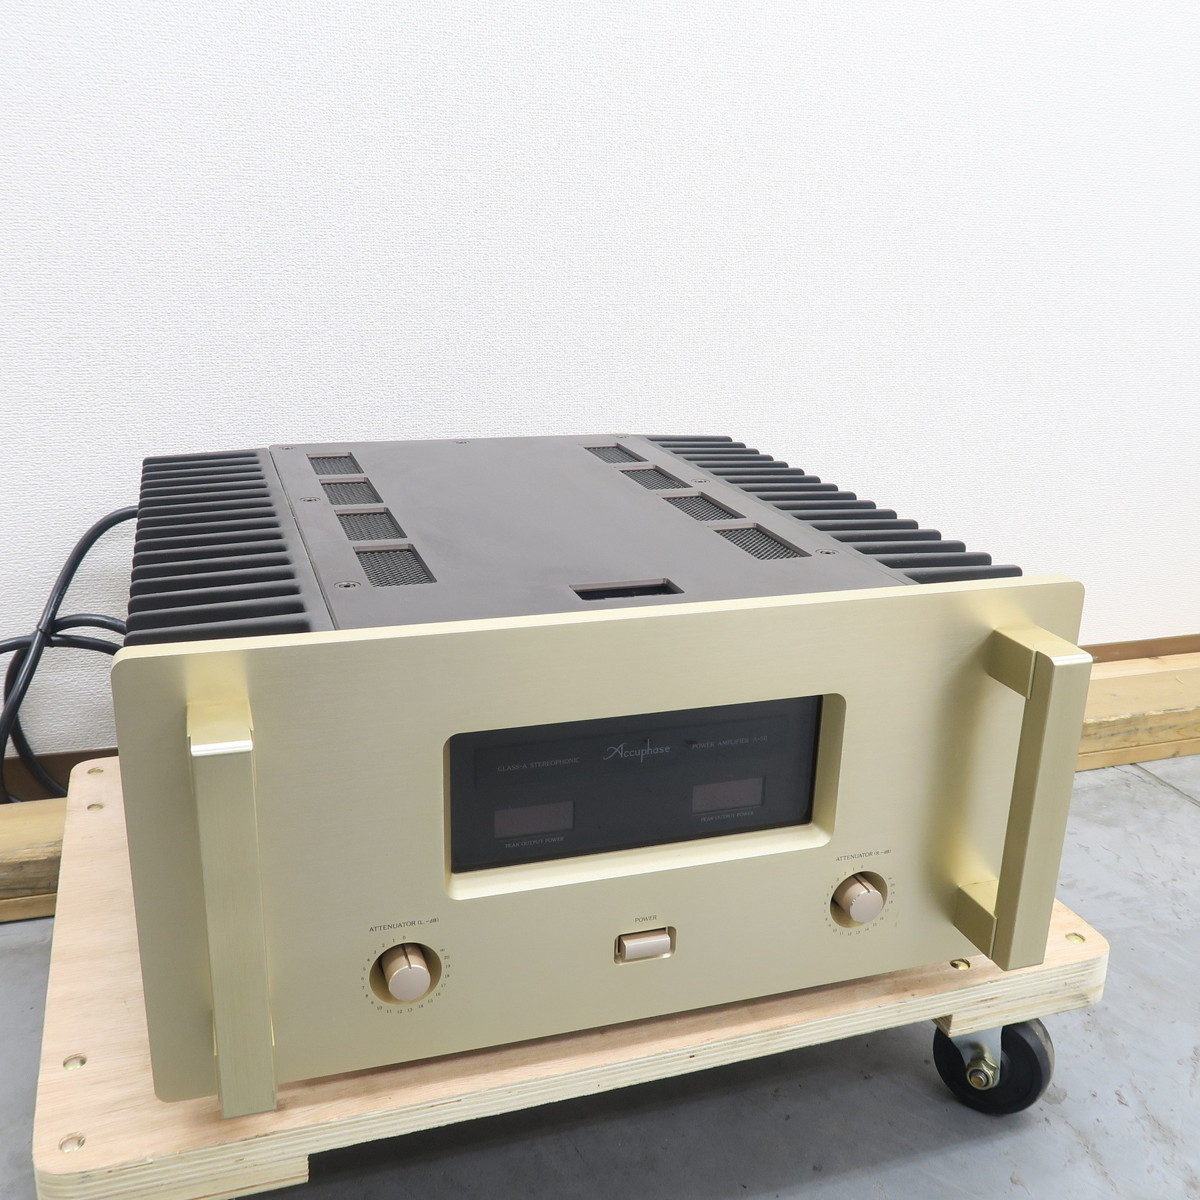 【Bランク】アキュフェーズ Accuphase A-50 パワーアンプ @49991_画像1